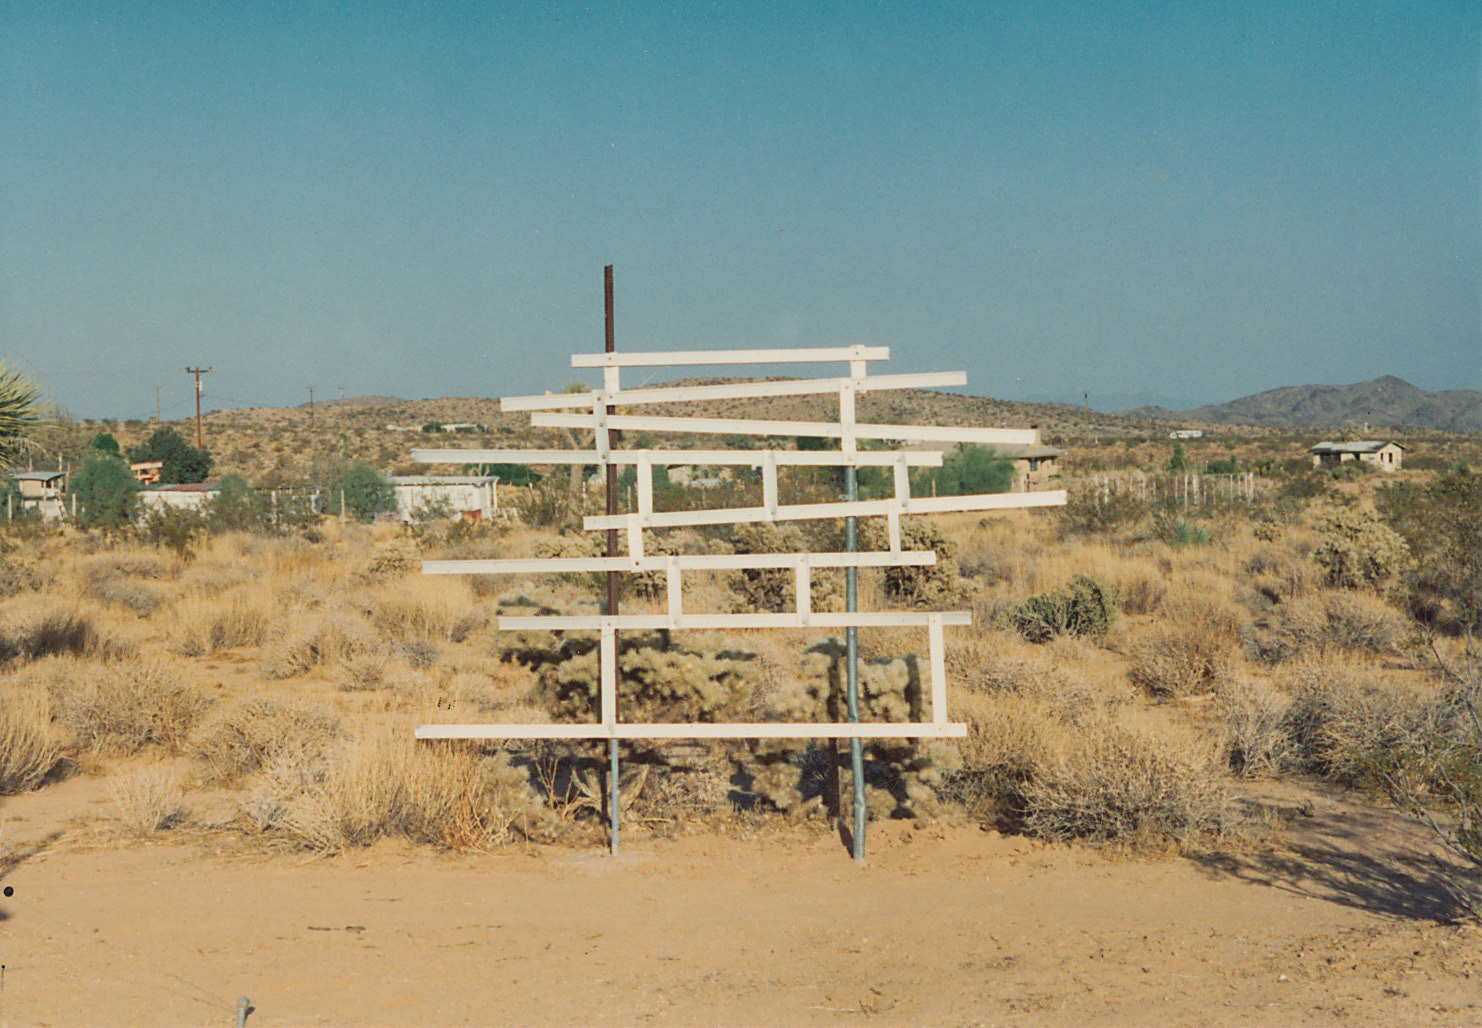 Noah Purifoy, Untitled (Sculpture Design in A Mondrian Fashion), 1992, mixed media, 6 x 8'. Photograph courtesy of the Noah Purifoy Foundation